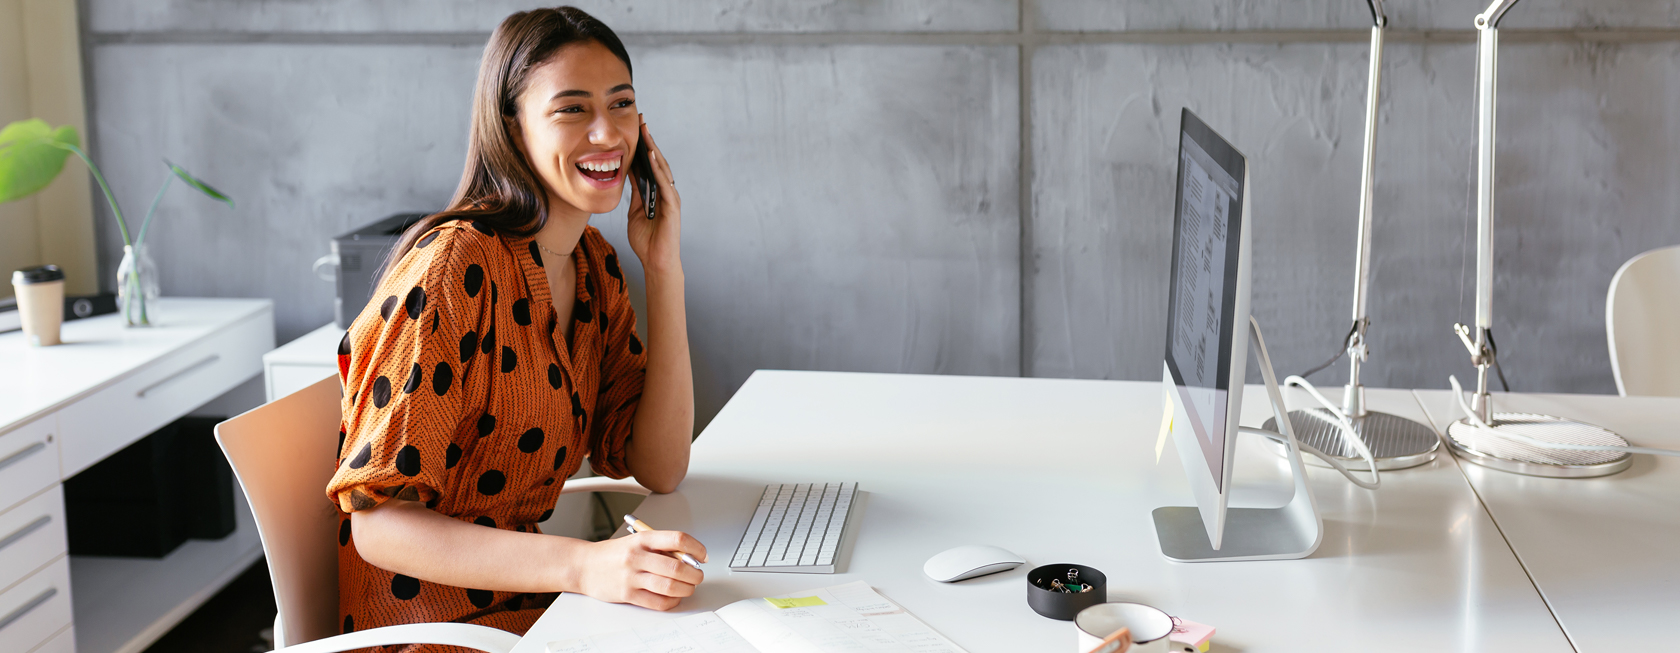 5 Easy Ways to Be Happier at Work